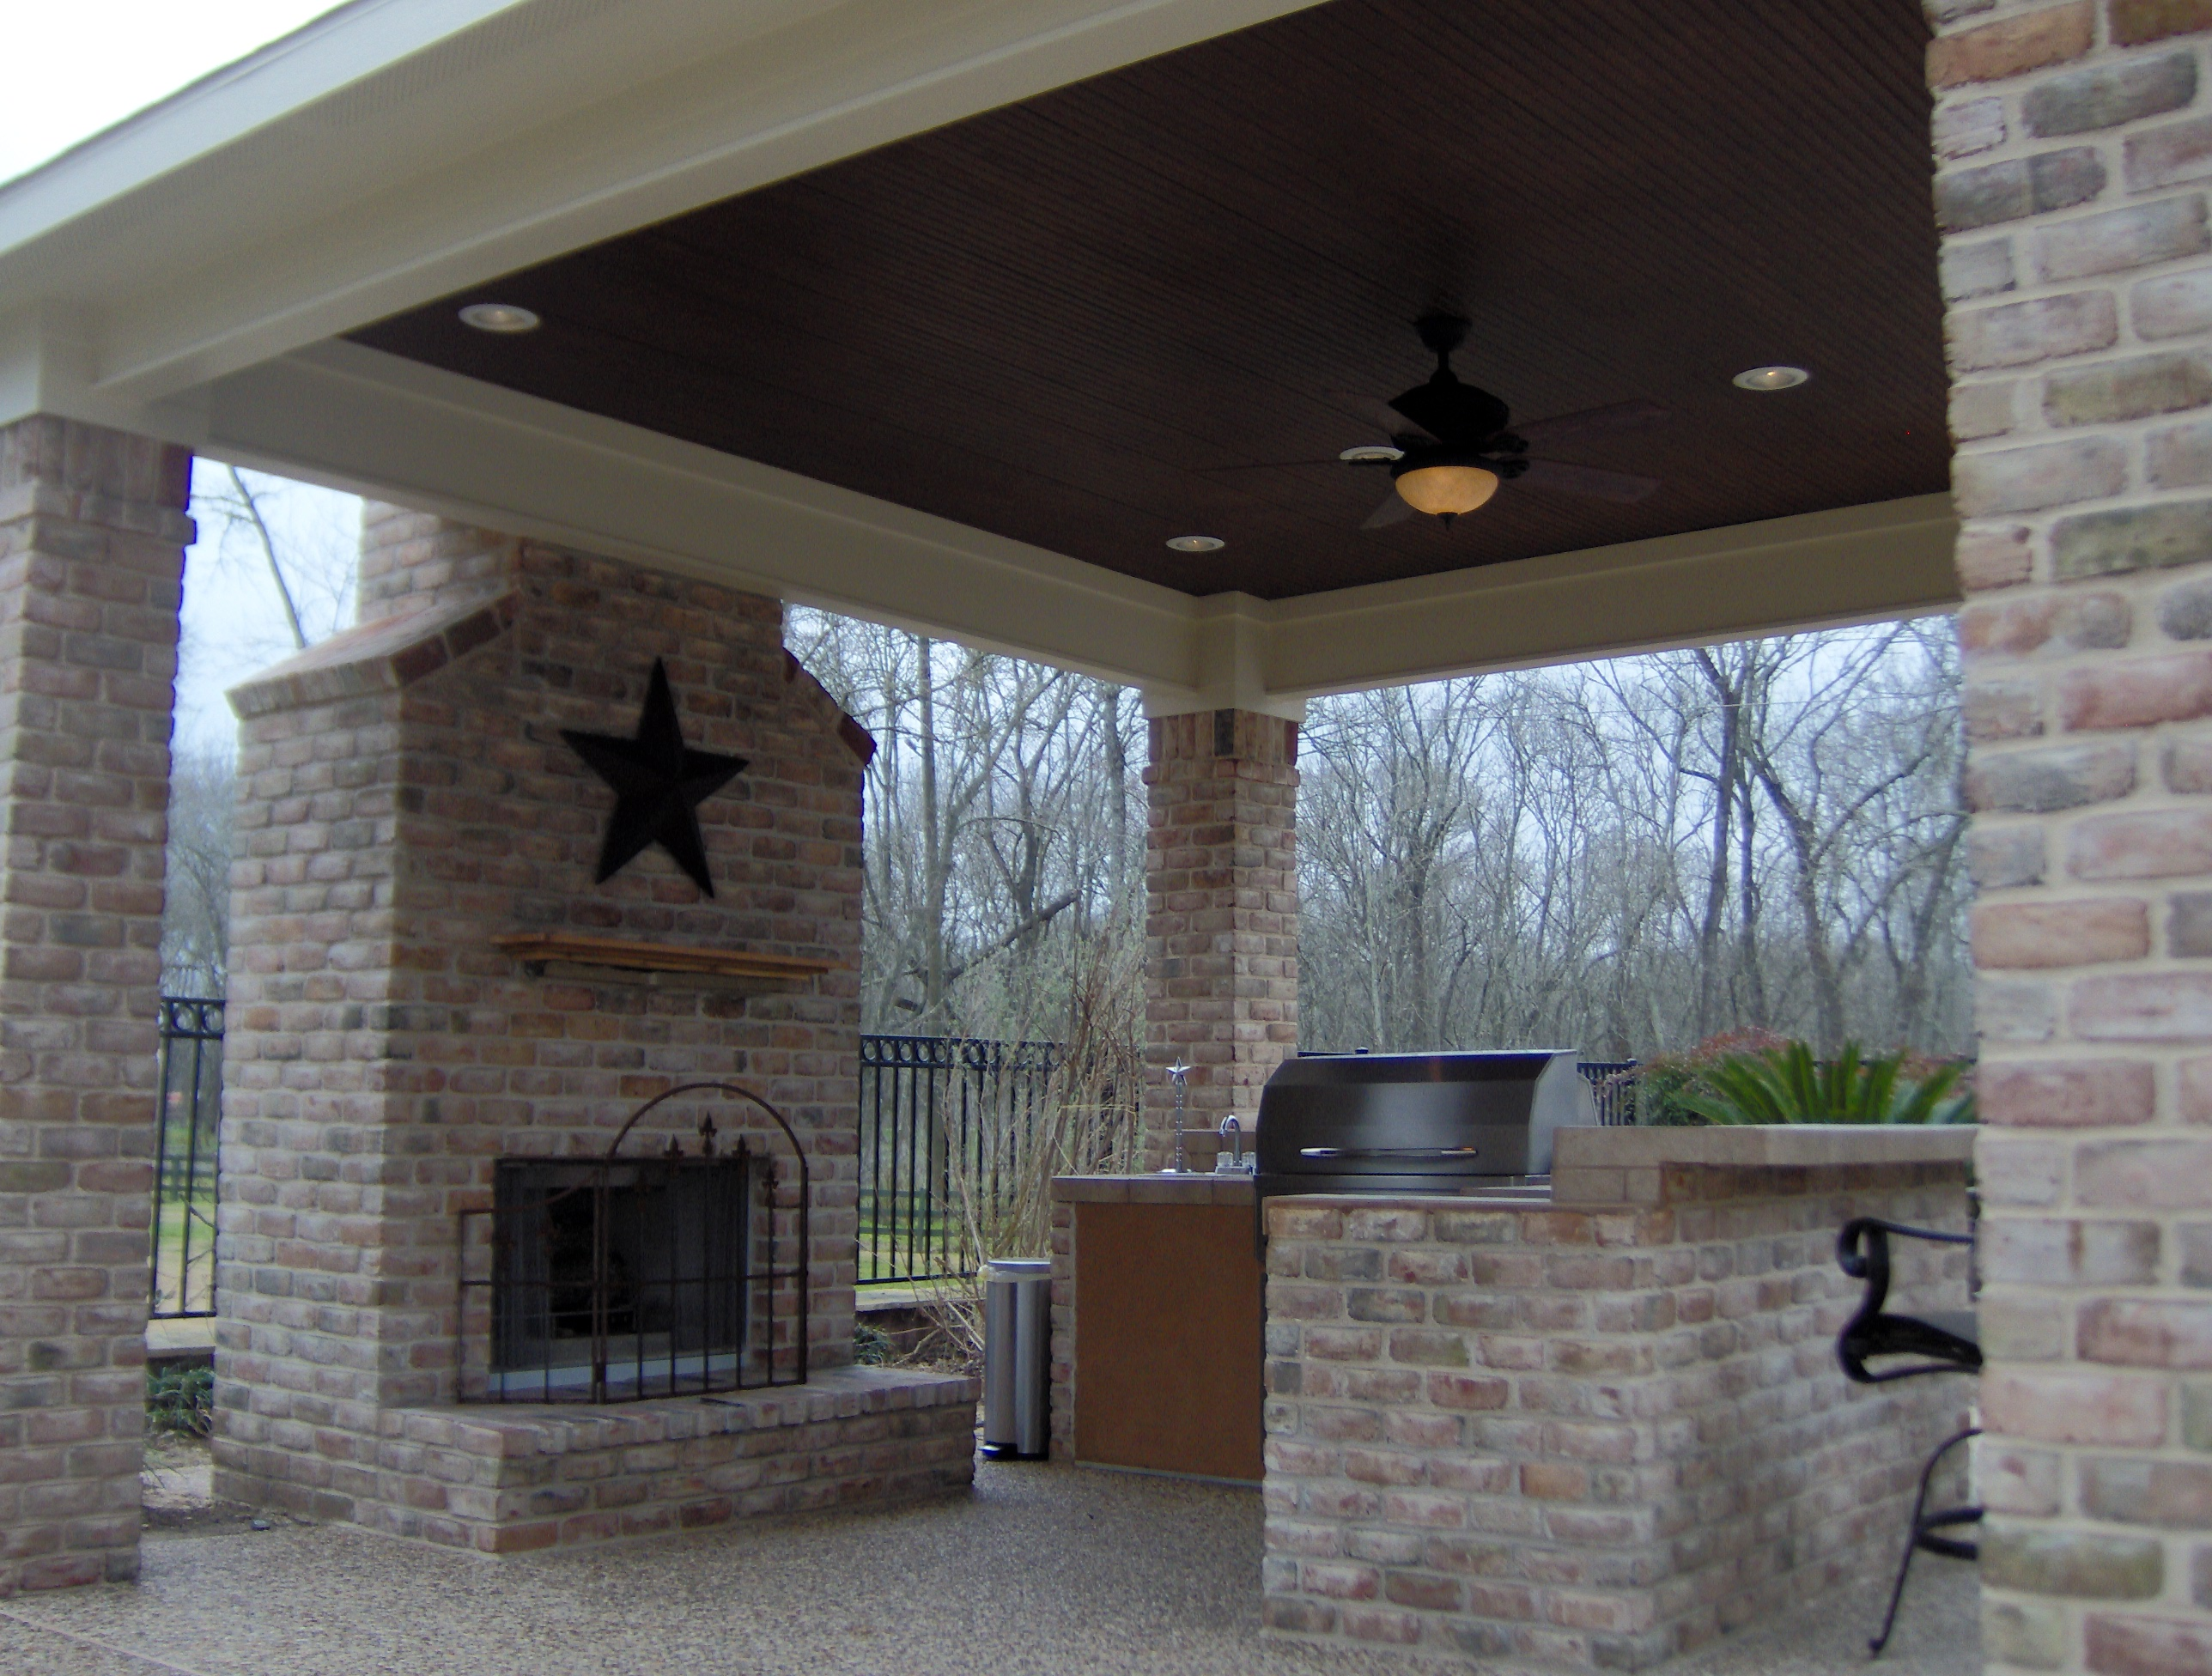 What Are My Options For A Covered Patio Dry Deck